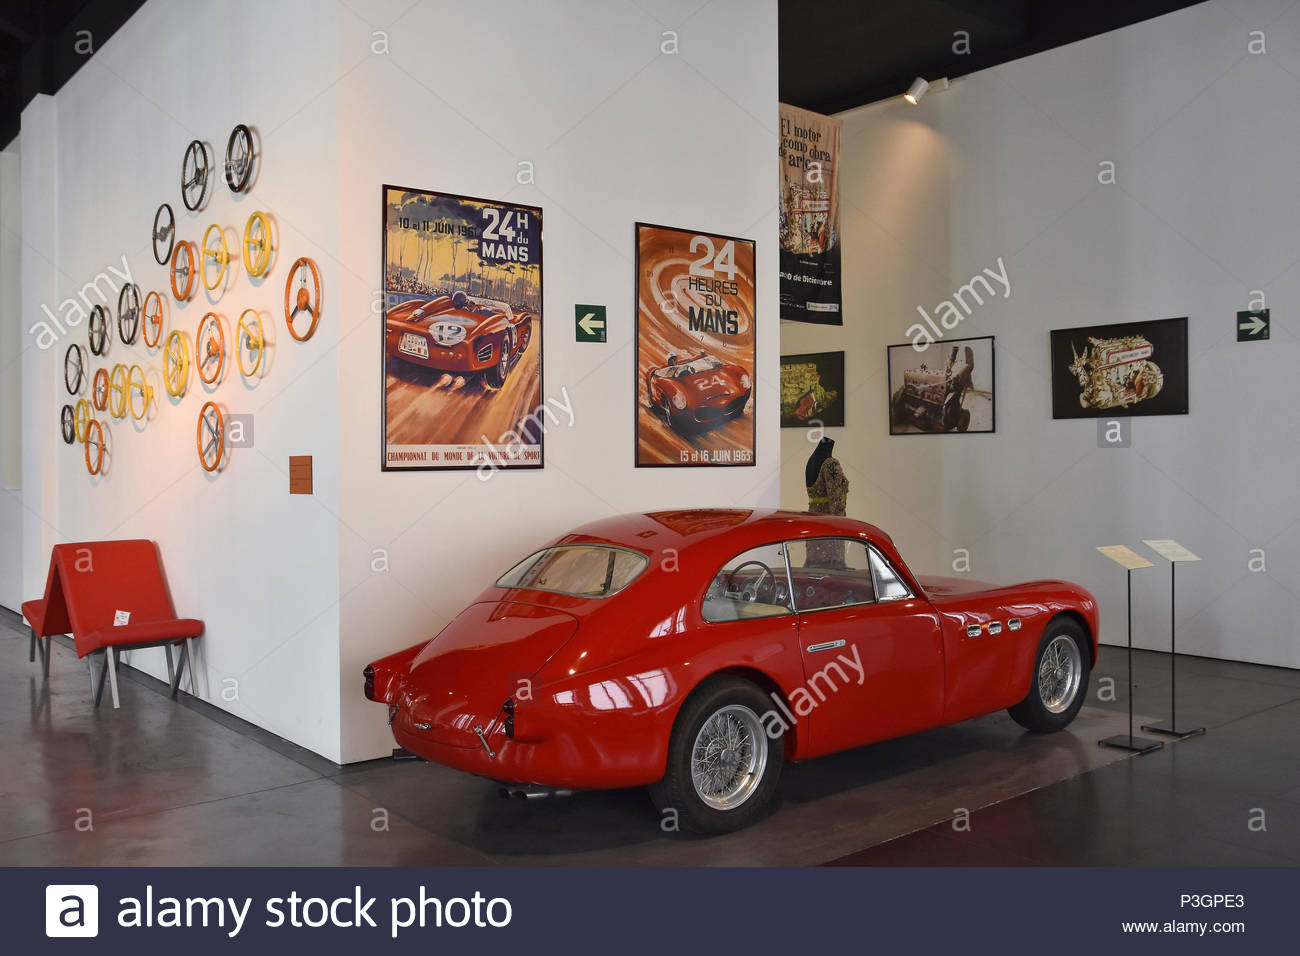 'Playboy's Car' 1950 Maserati - Model 1500 A6, displayed at Automobile Museum (Museo Automovilístico) in Malaga Spain Europe. - Stock Image